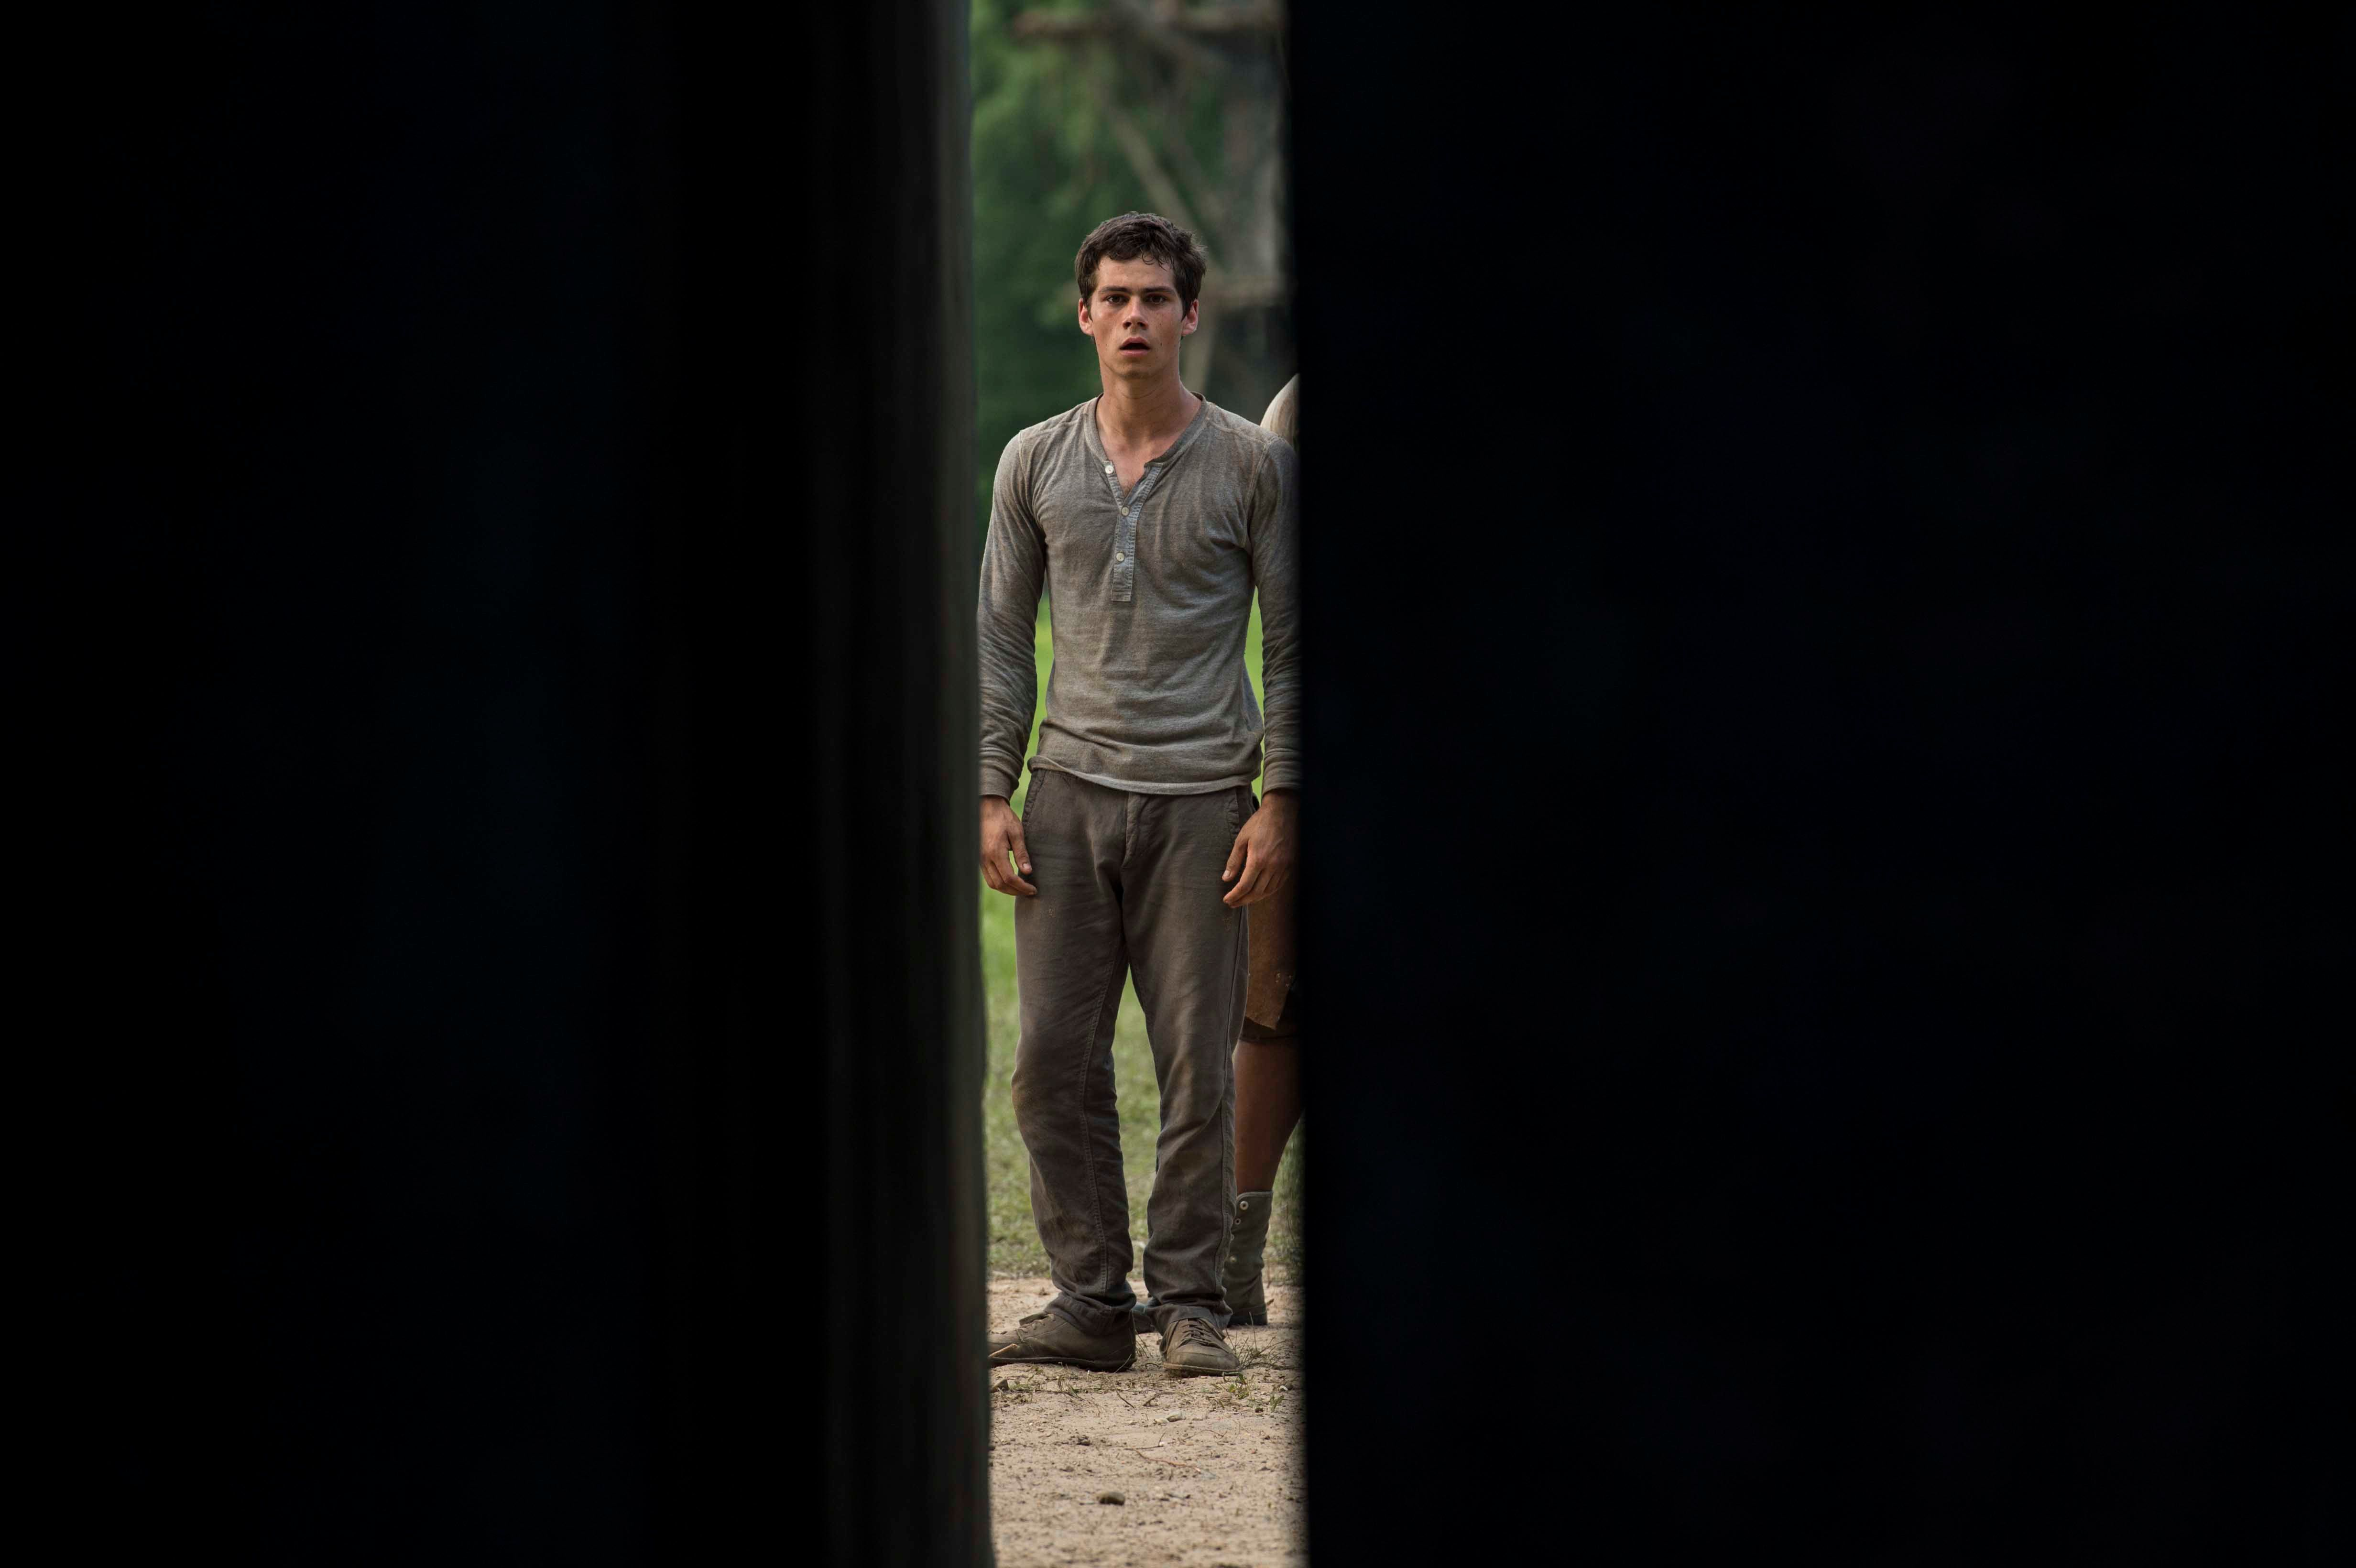 THE MAZE RUNNER Movie Images Featuring Dylan O'Brien ...